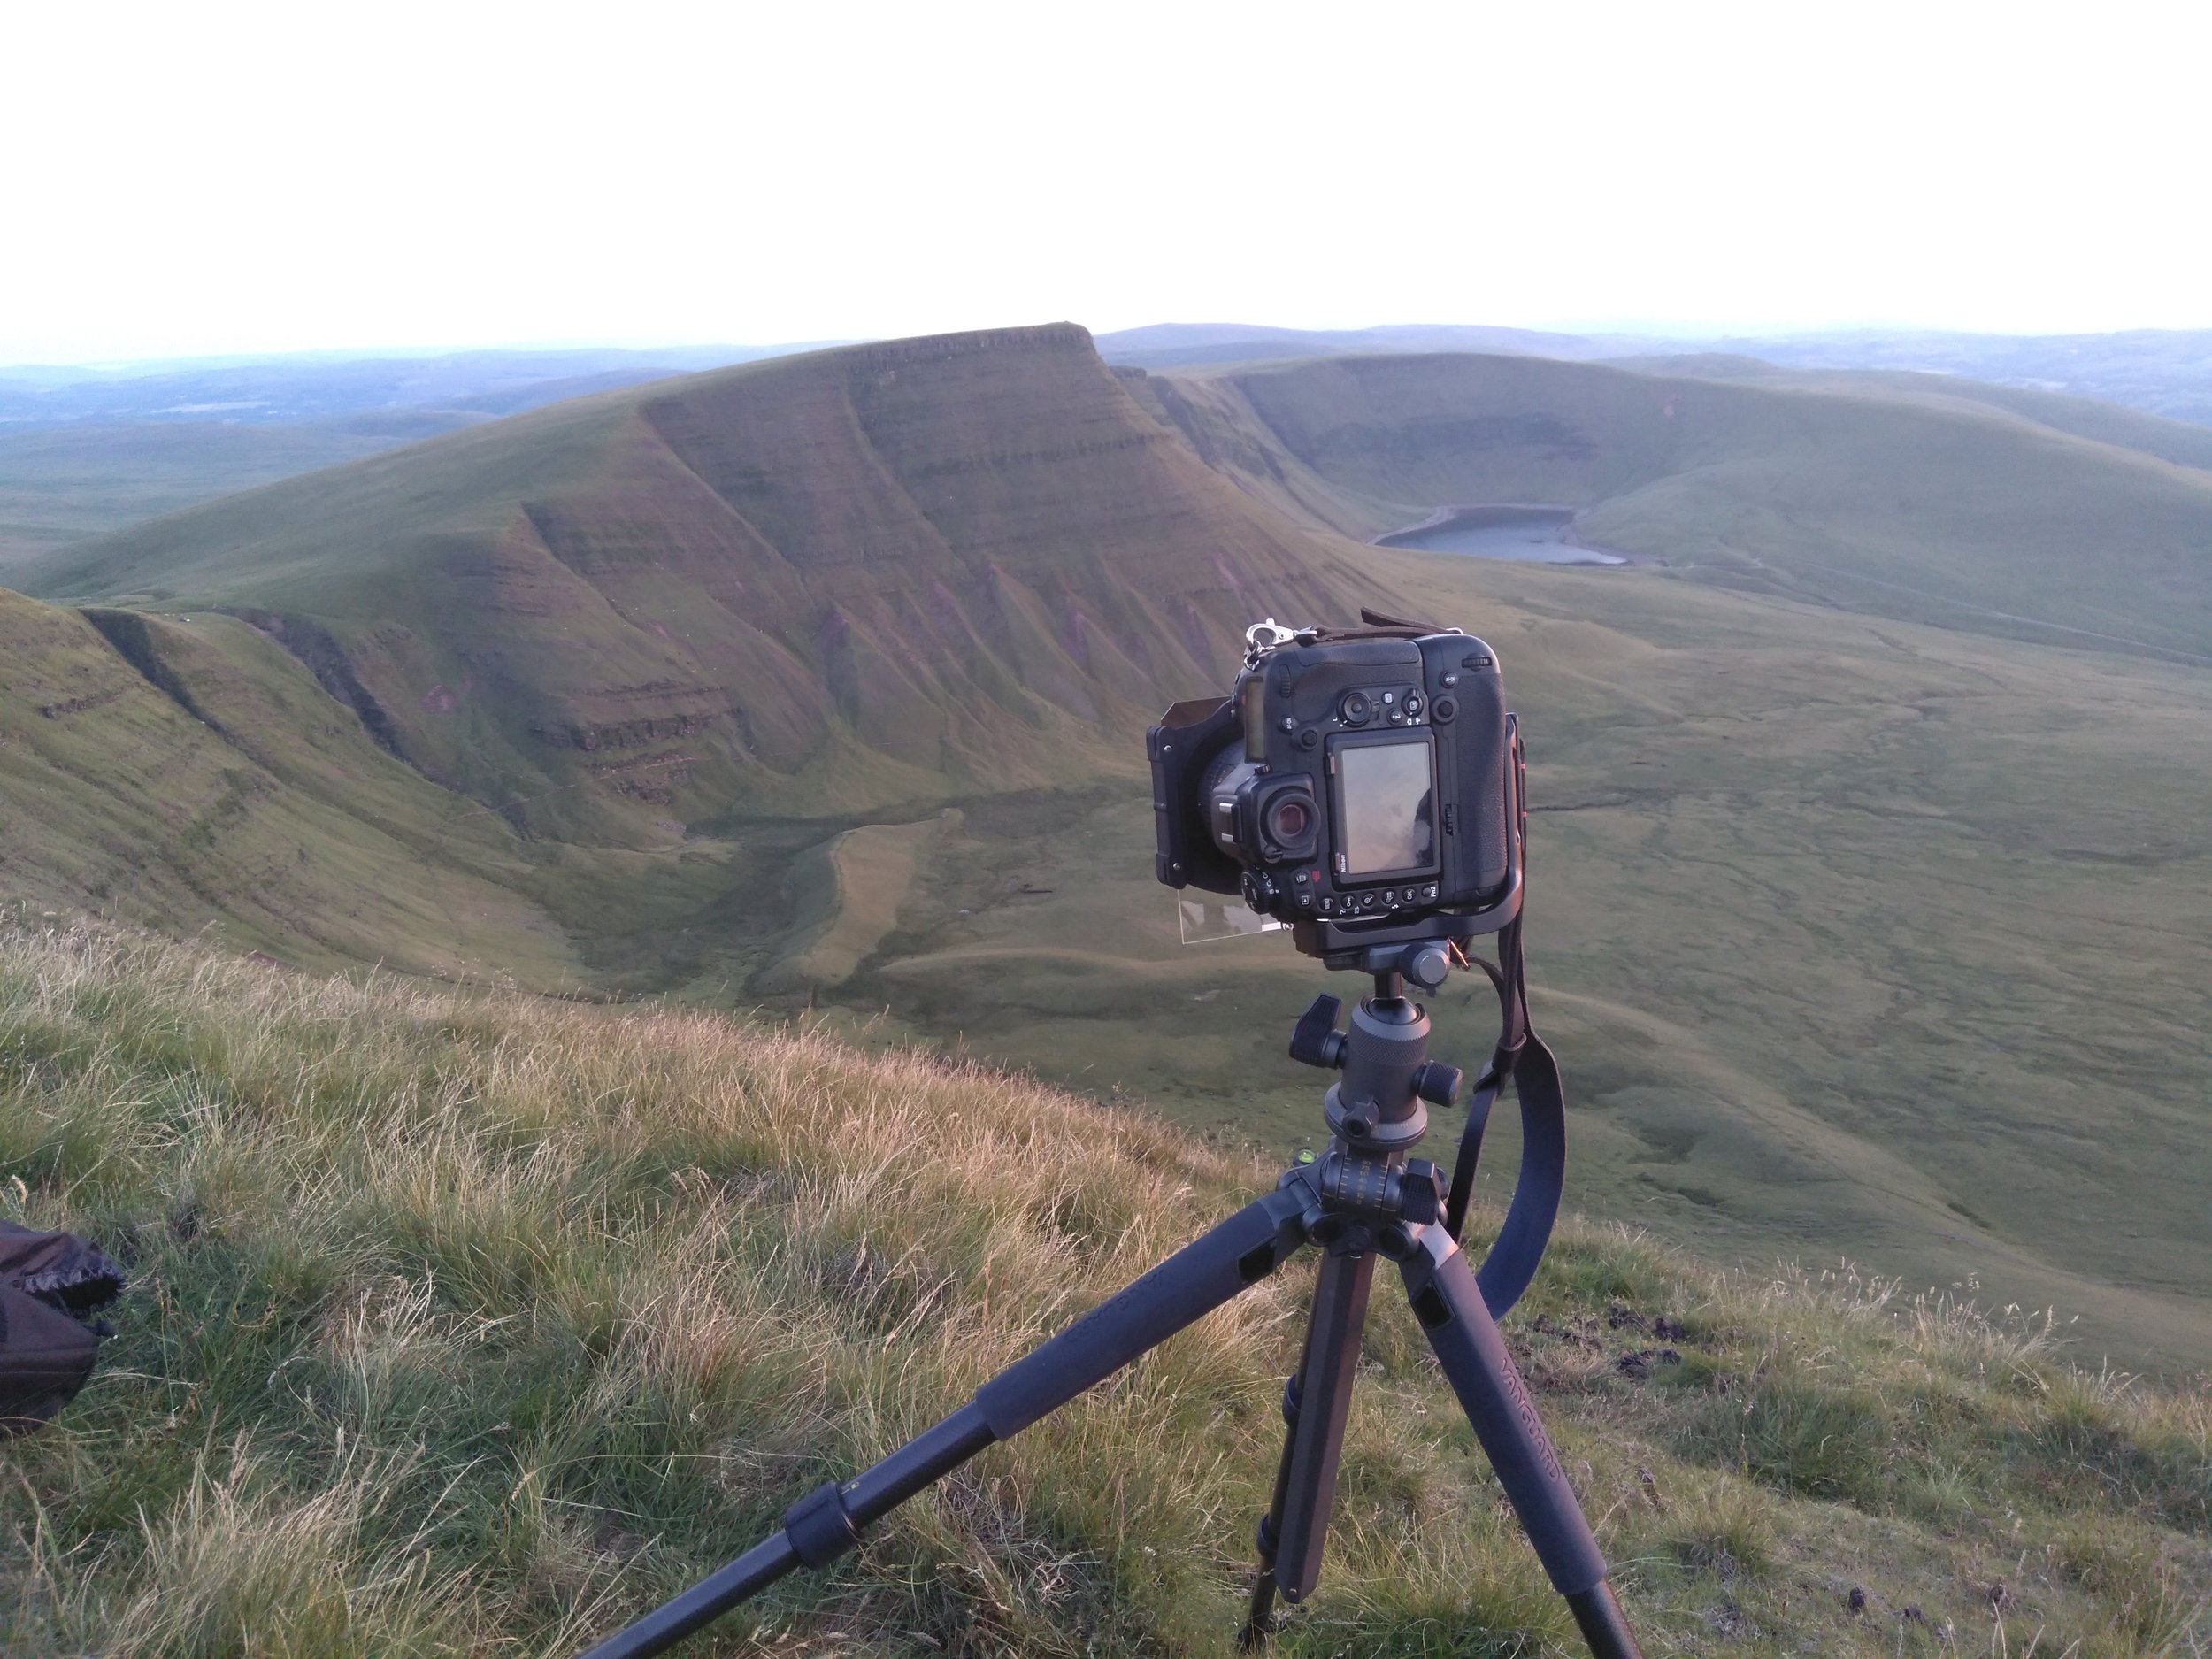 Vanguard Alta Pro2+ 263CB tripod on Picws Du, Brecon Beacons